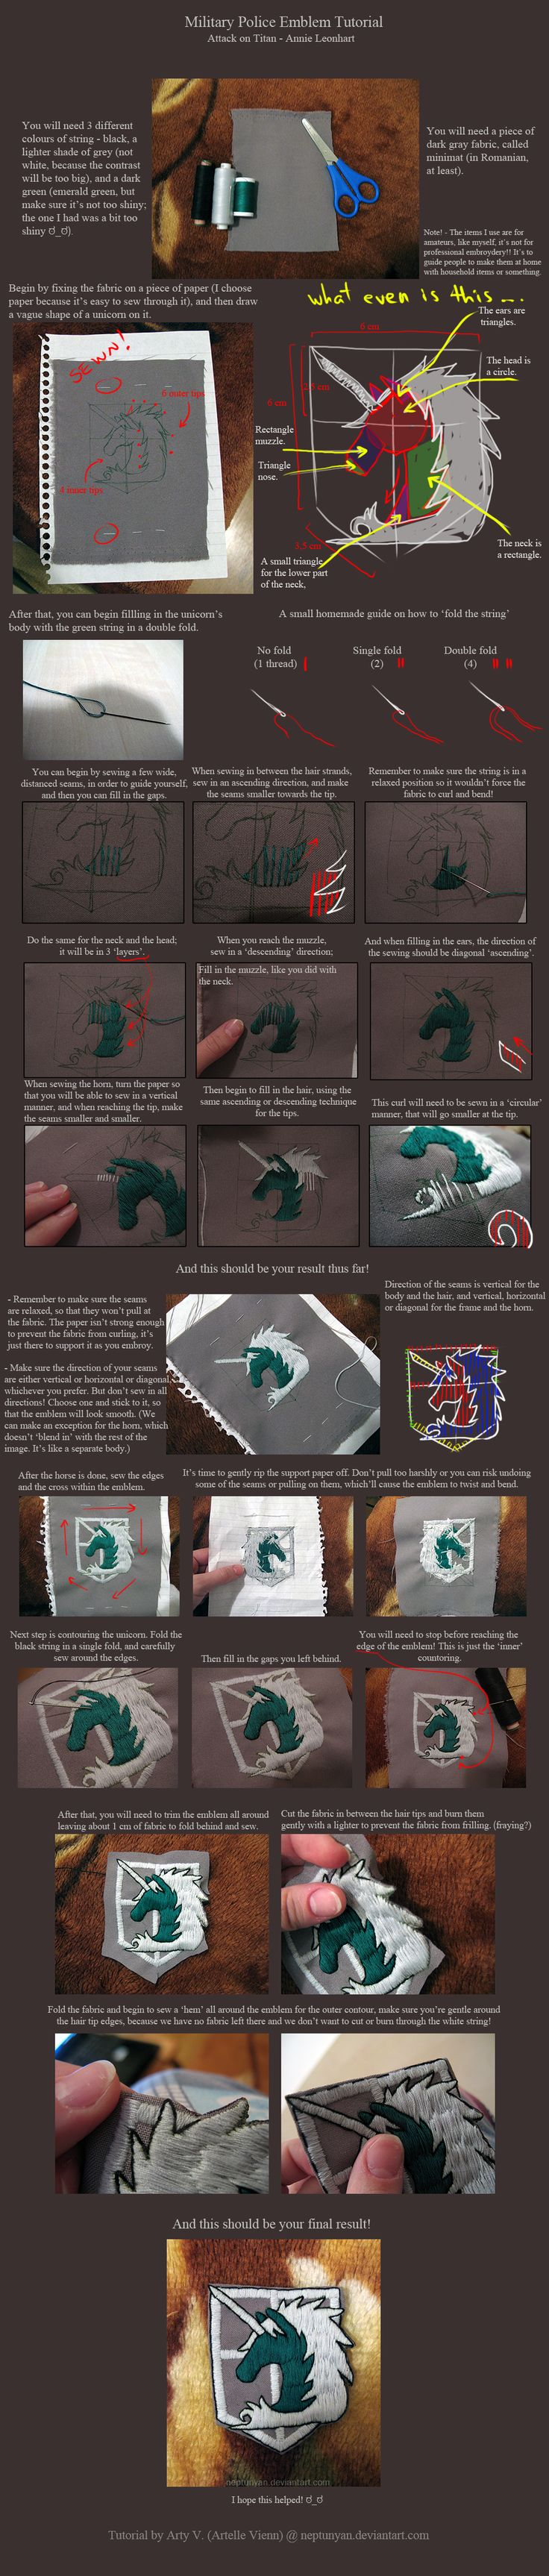 Military Police Emblem Tutorial - Snk. by neptunyan